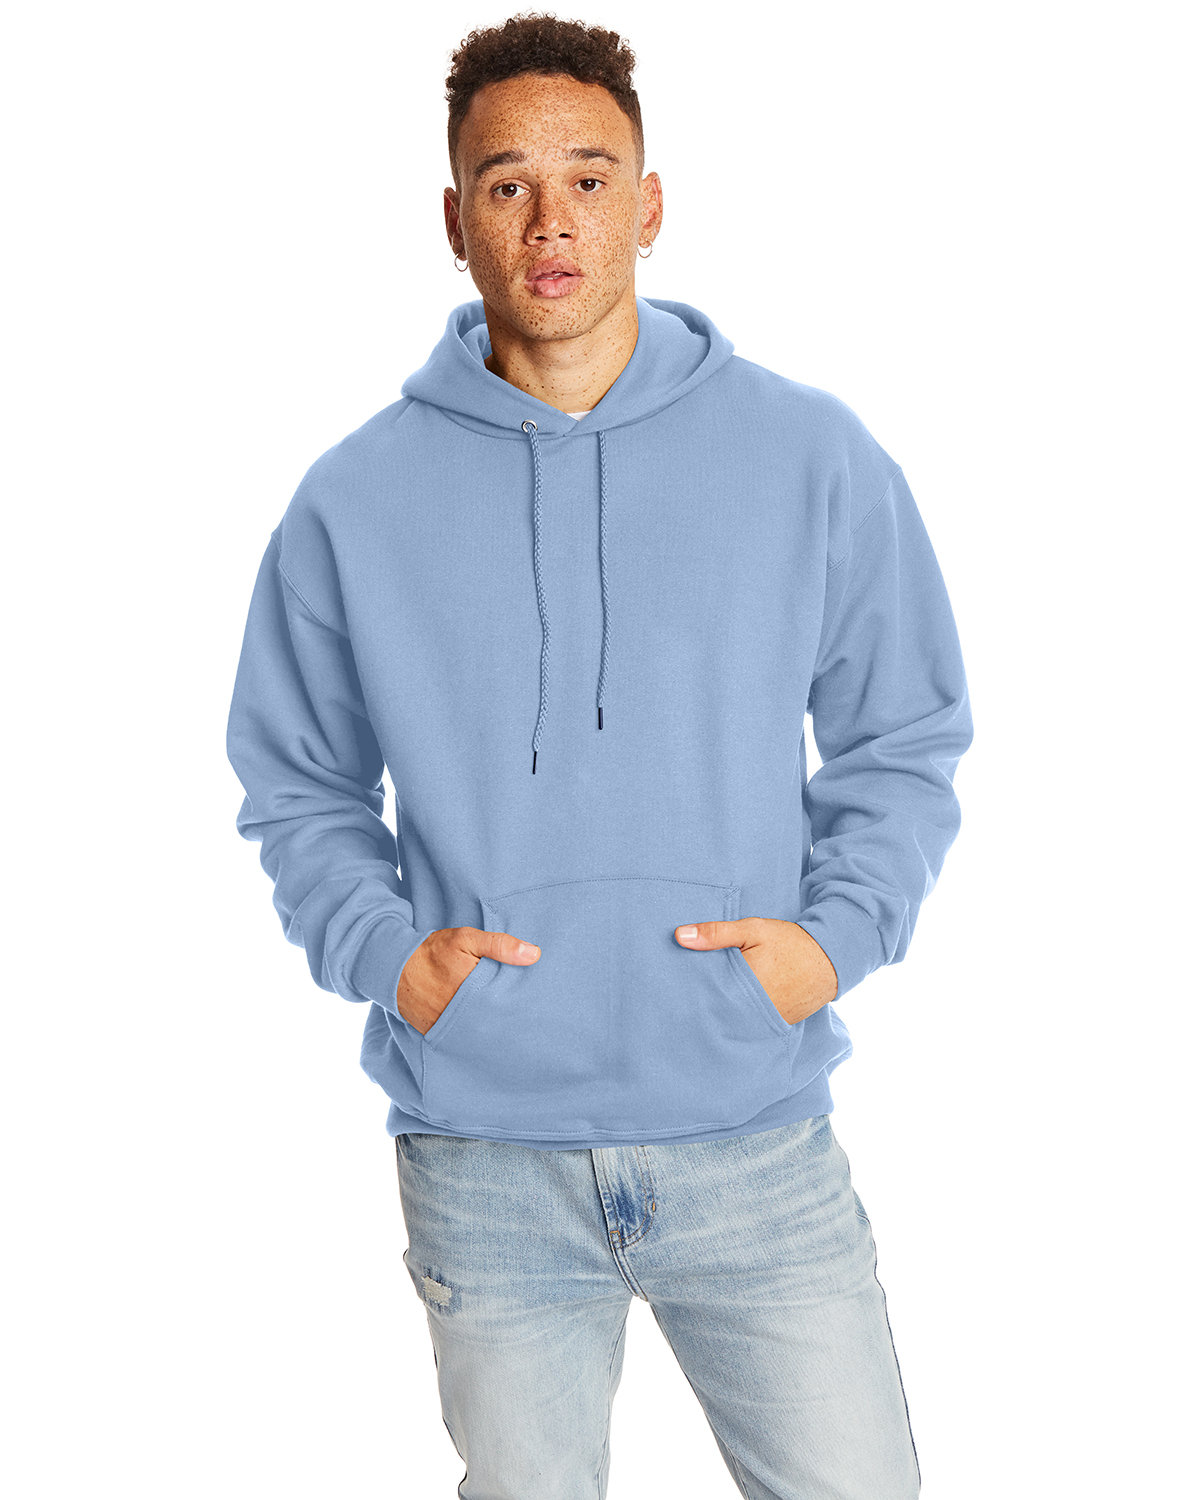 Hanes Adult Ultimate Cotton® 90/10 Pullover Hooded Sweatshirt LIGHT BLUE